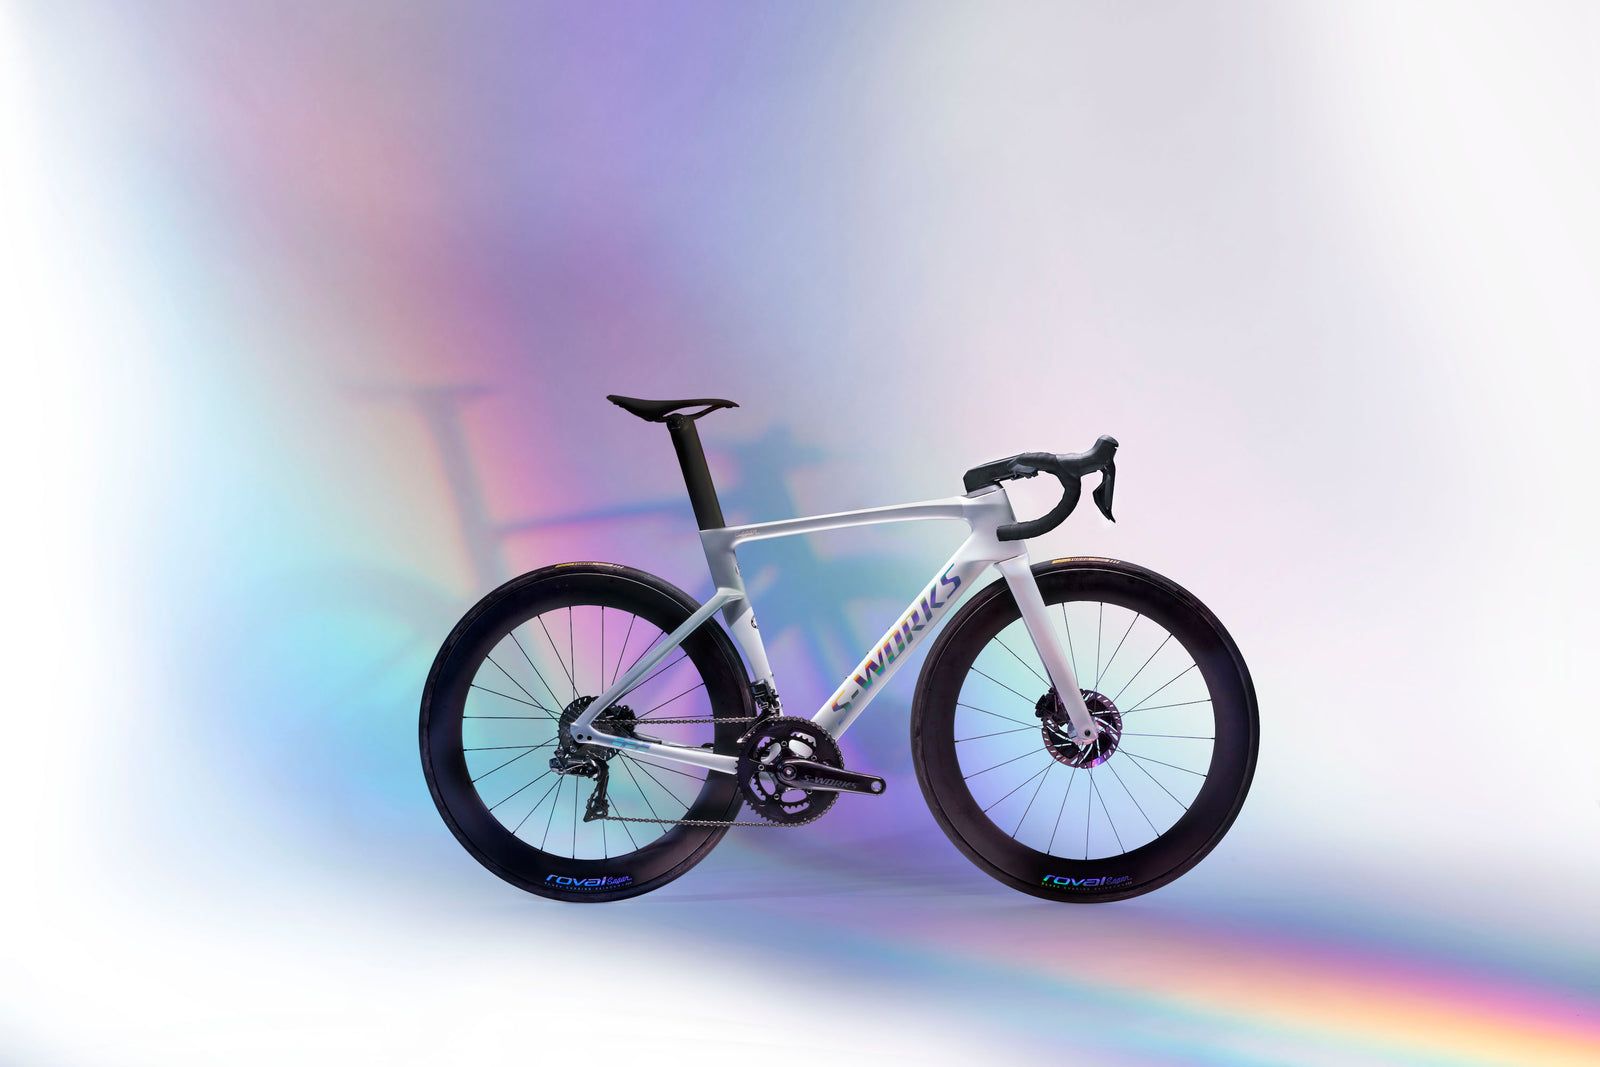 2020 S-Works Venge Di2 Sagan Collection Overexposed